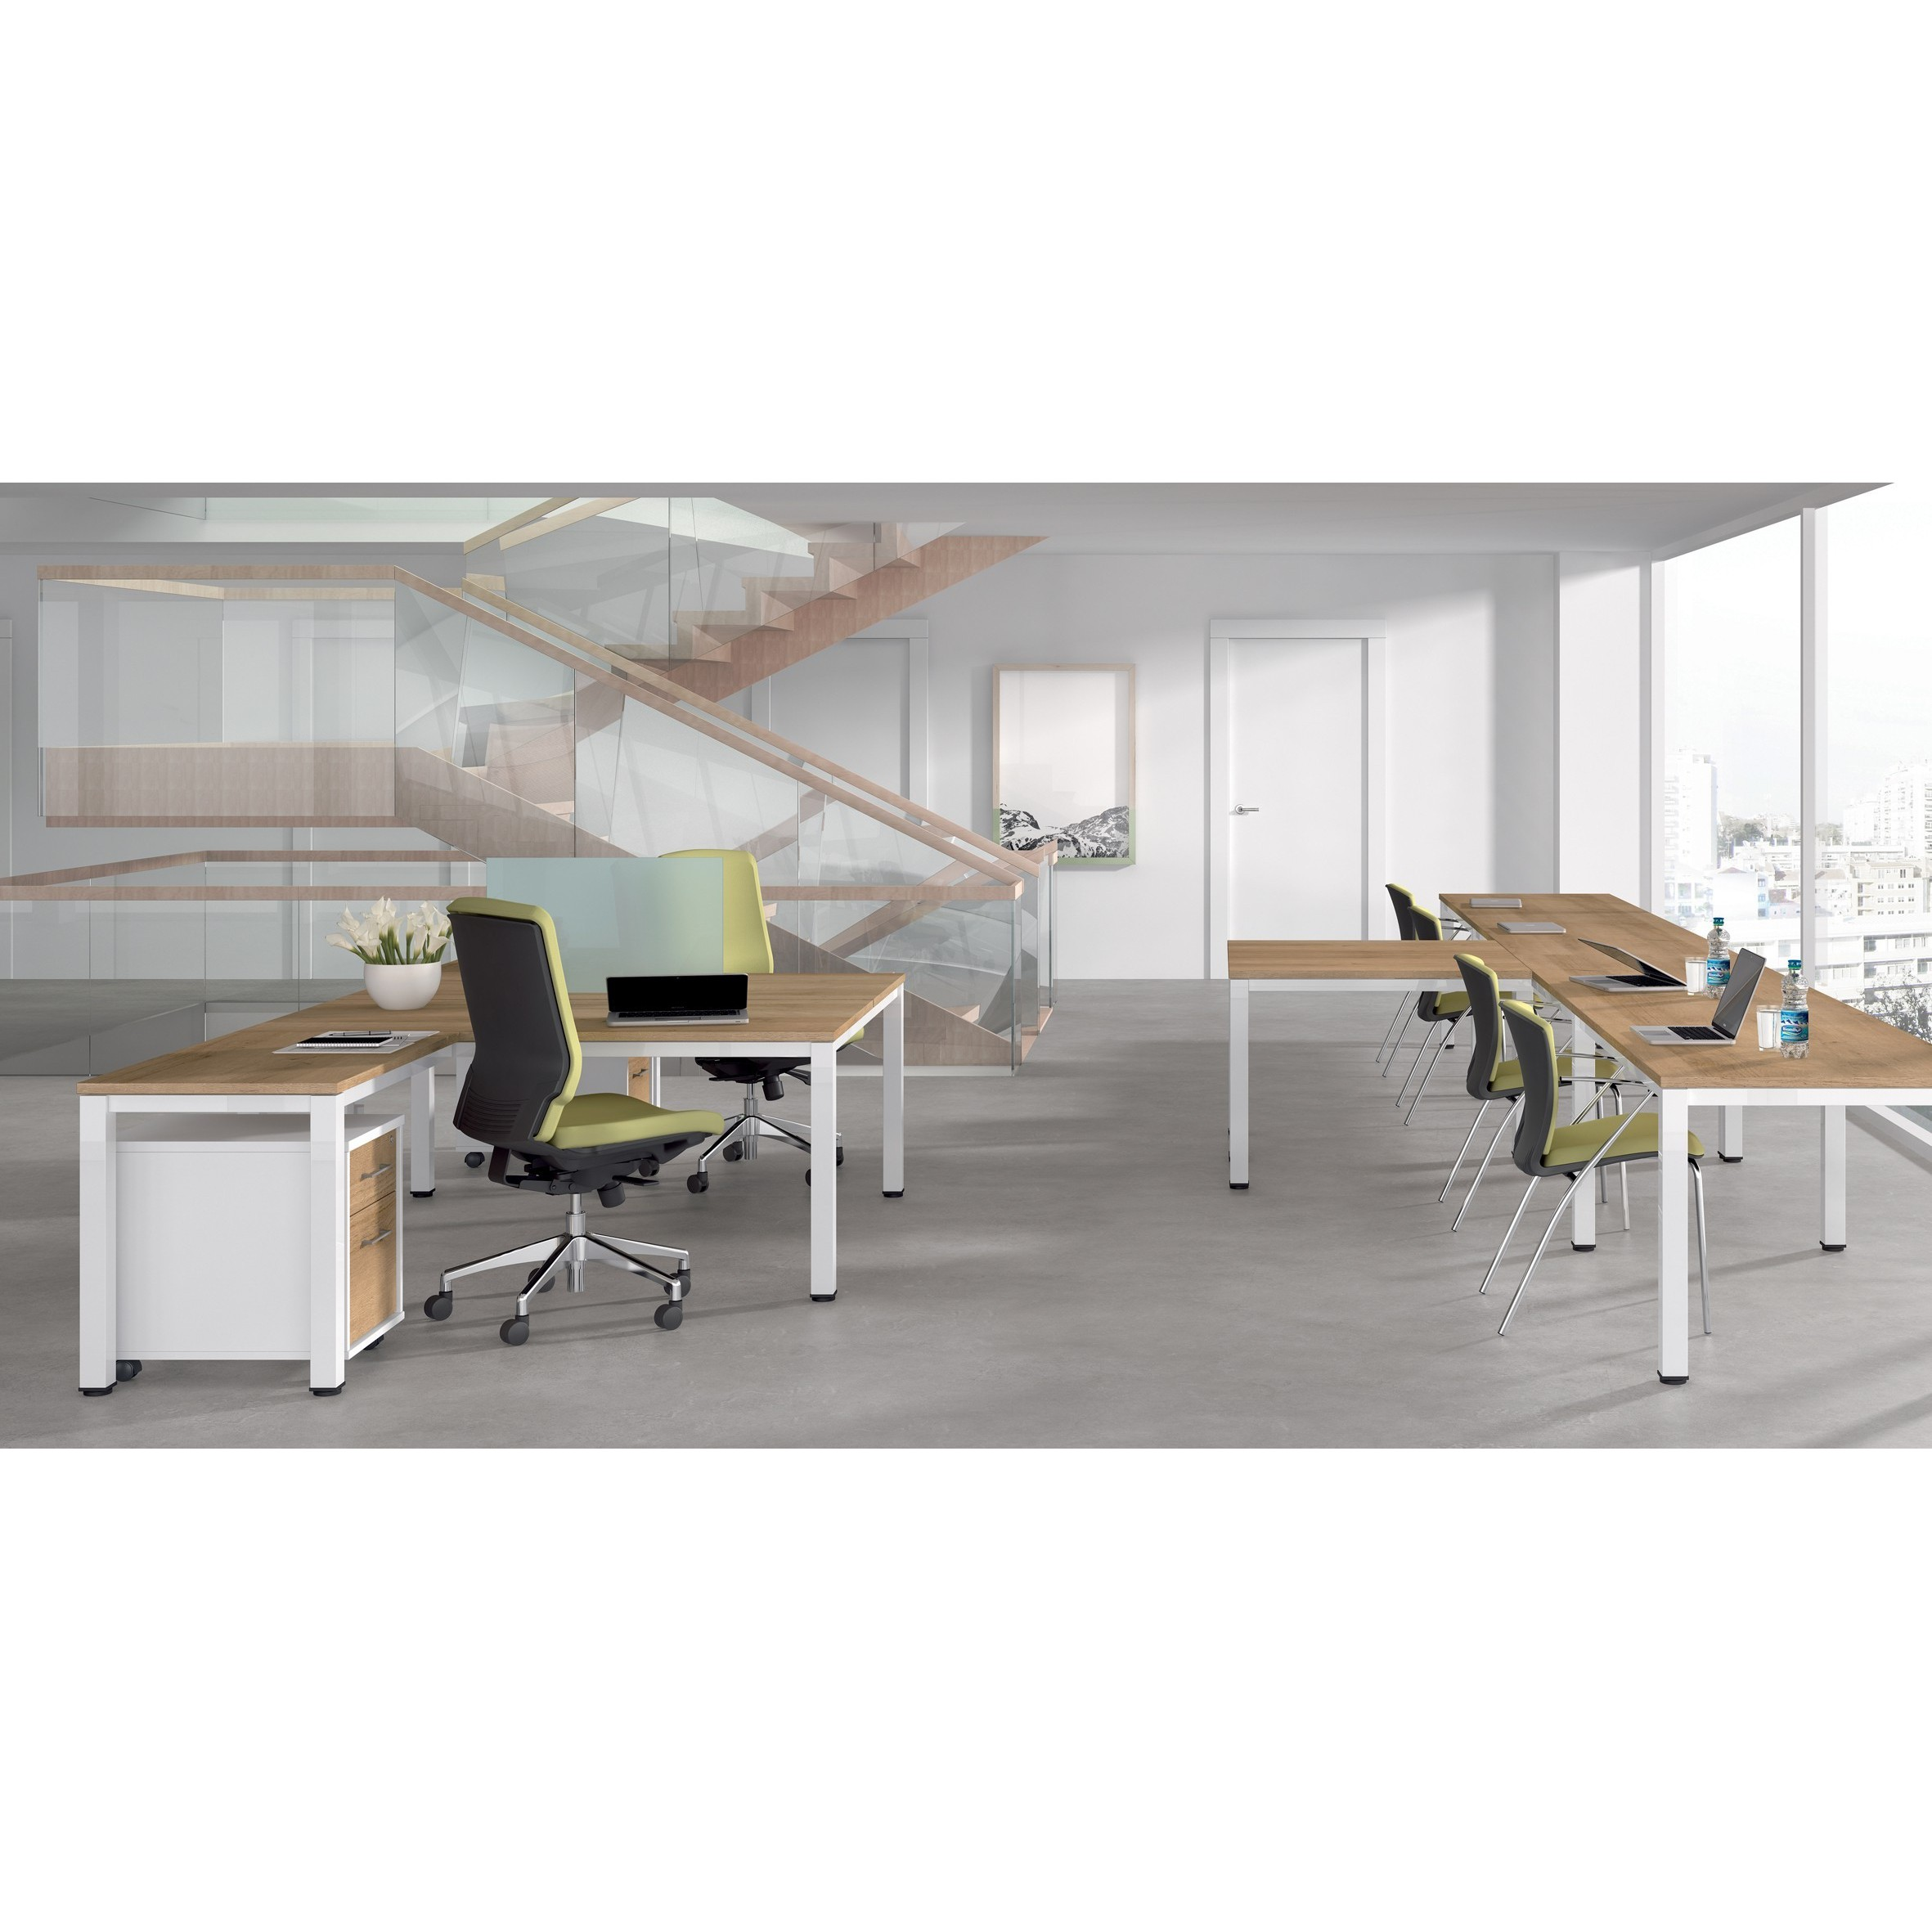 TABLE OFFICE 'S EXECUTIVE SERIES 200X100 WHITE/BEECH